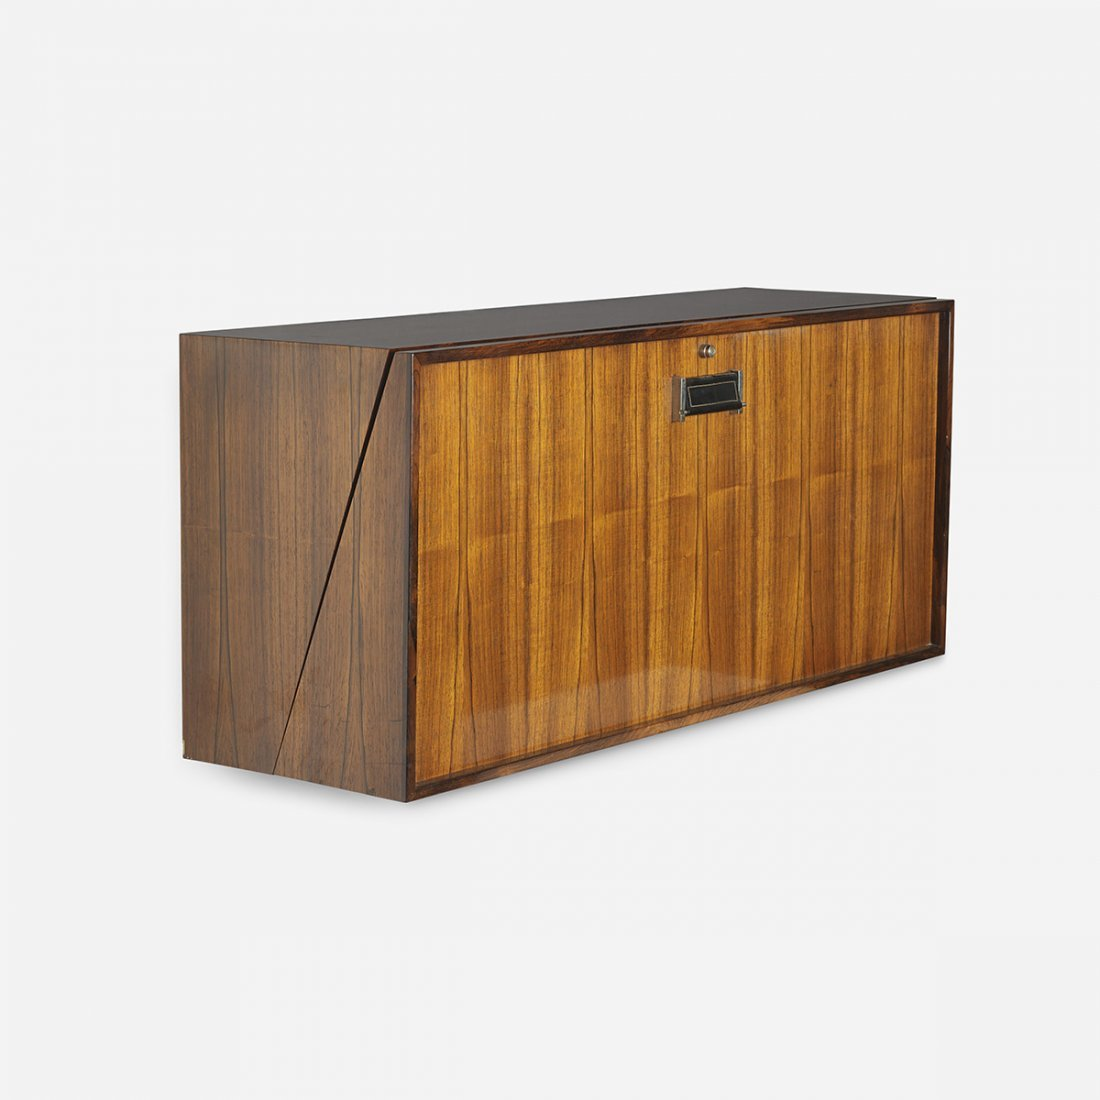 Danish wall-mounted bar cabinet